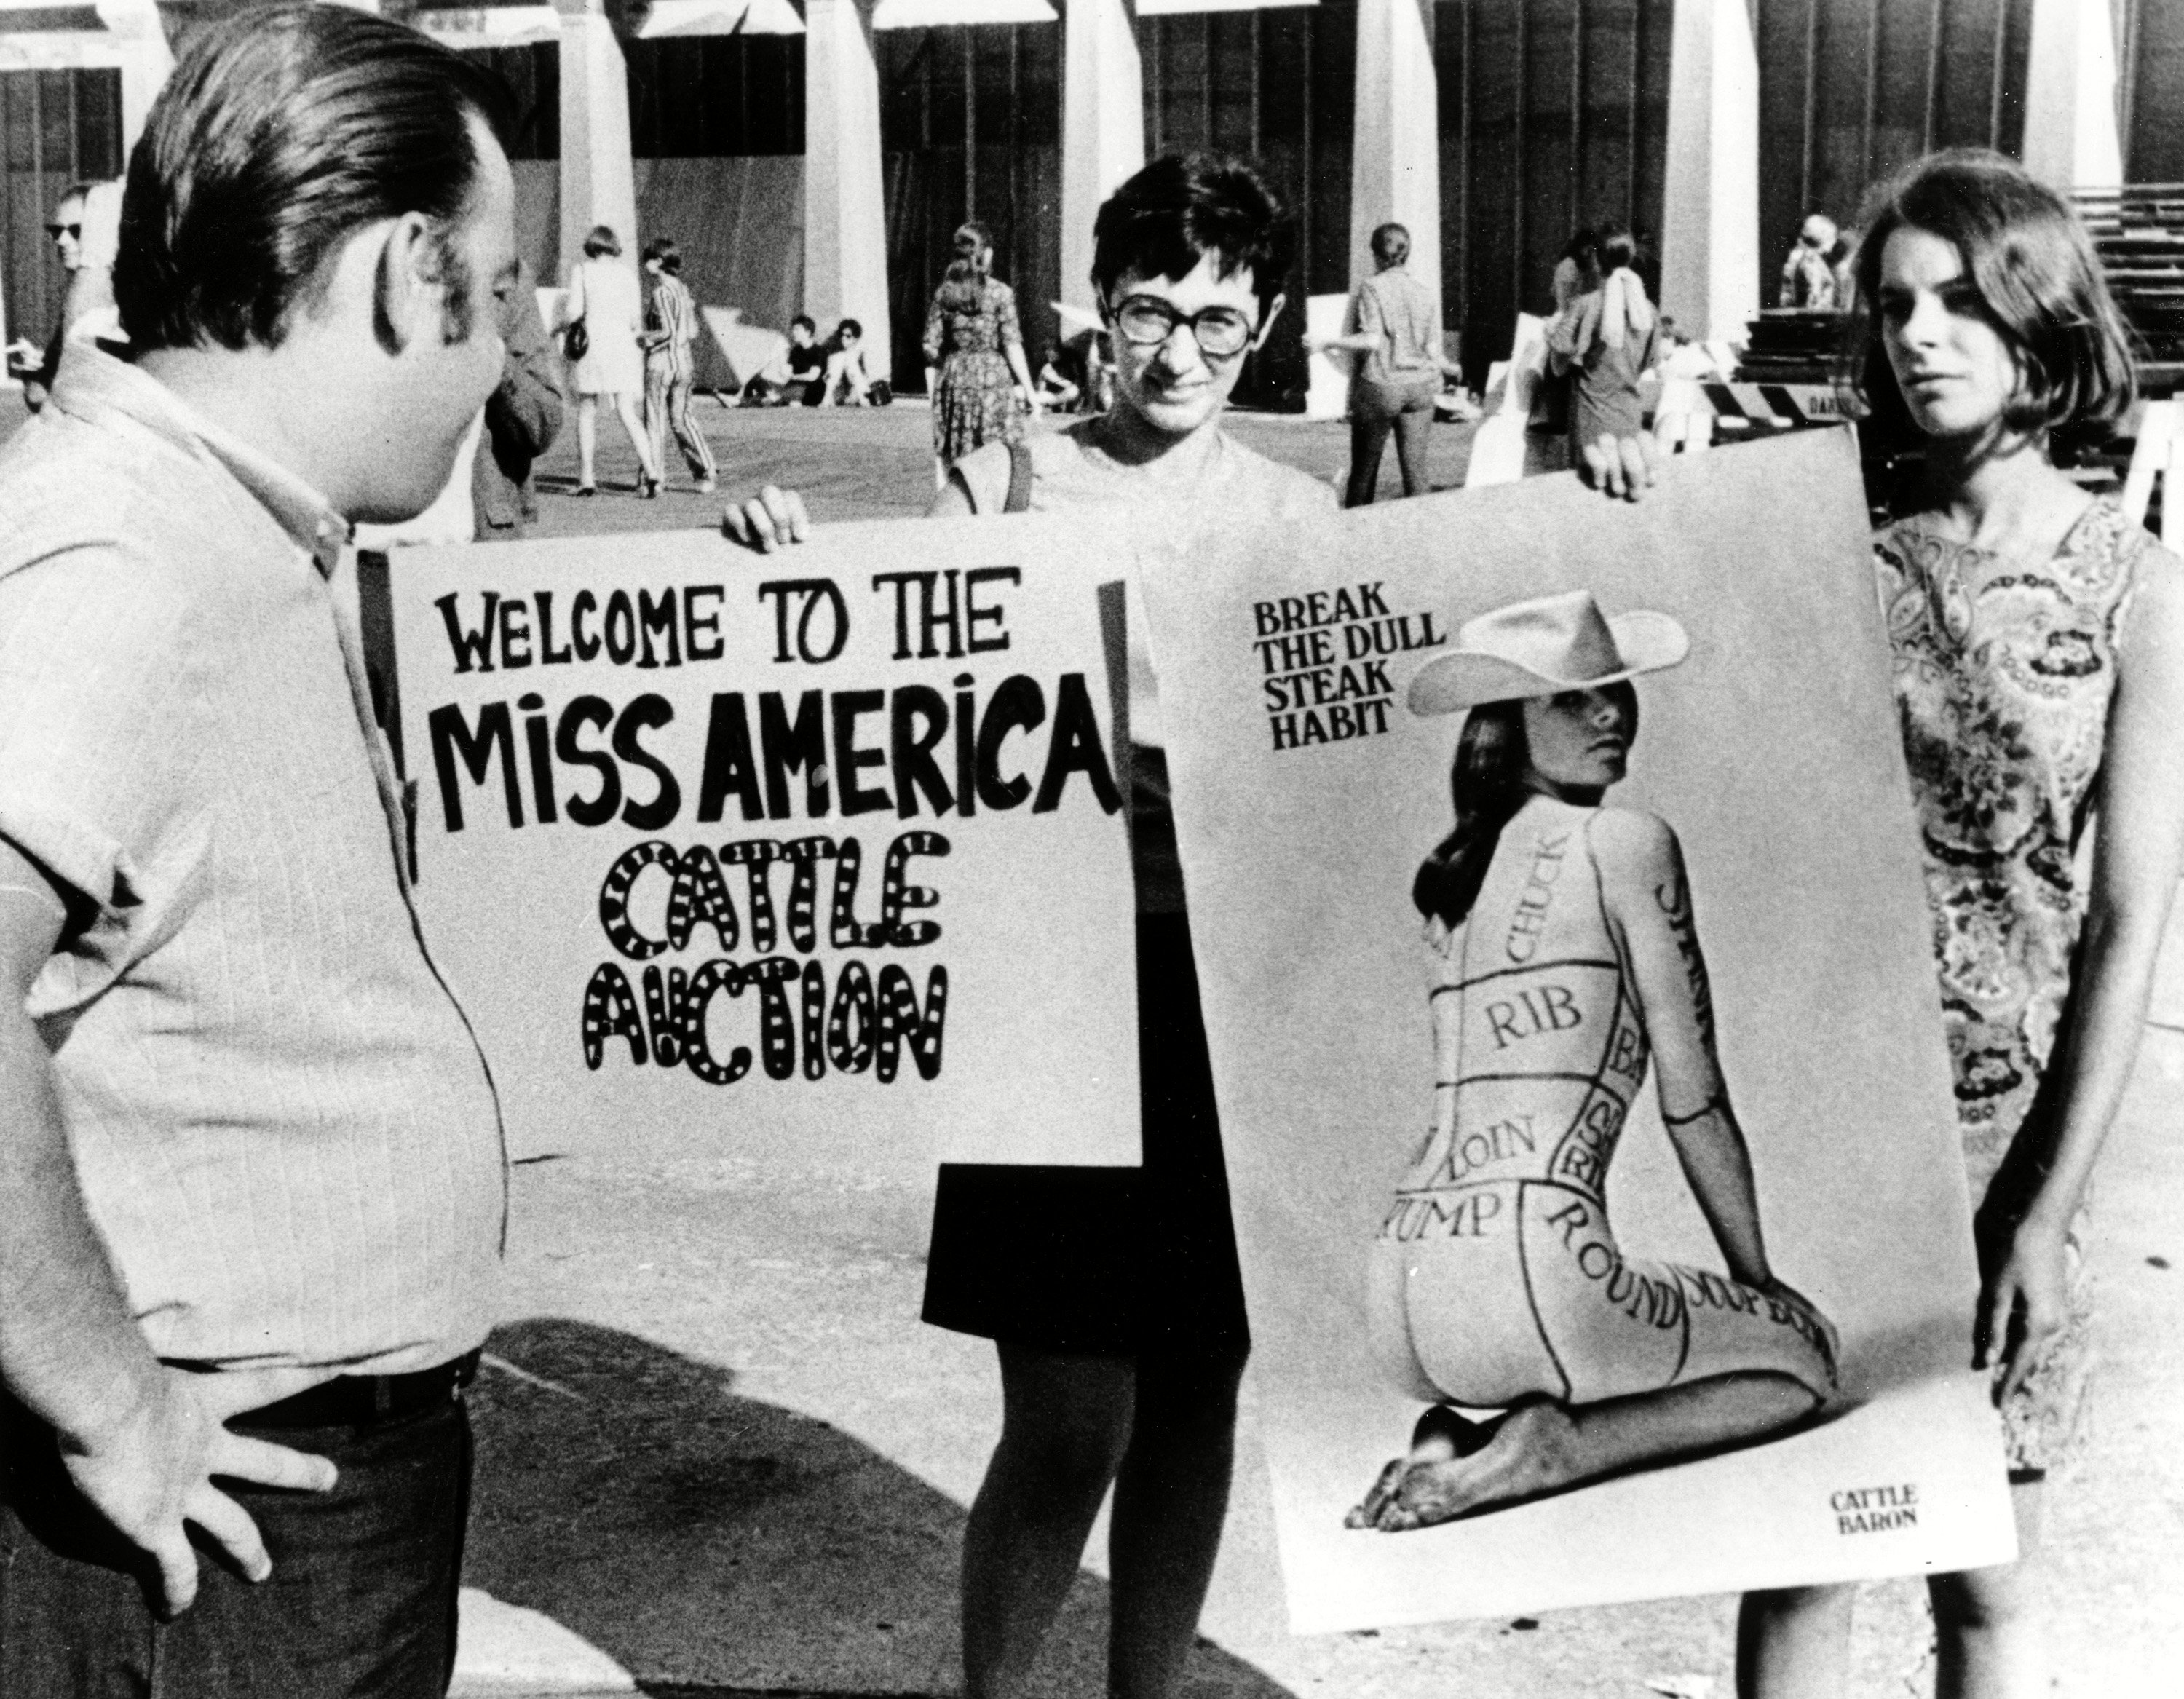 Protesters denounce the swimsuit competition as a cattle auction on the boardwalk in Atlantic City, N.J., where the Miss America Pageant is taking place on Sep. 7, 1968.